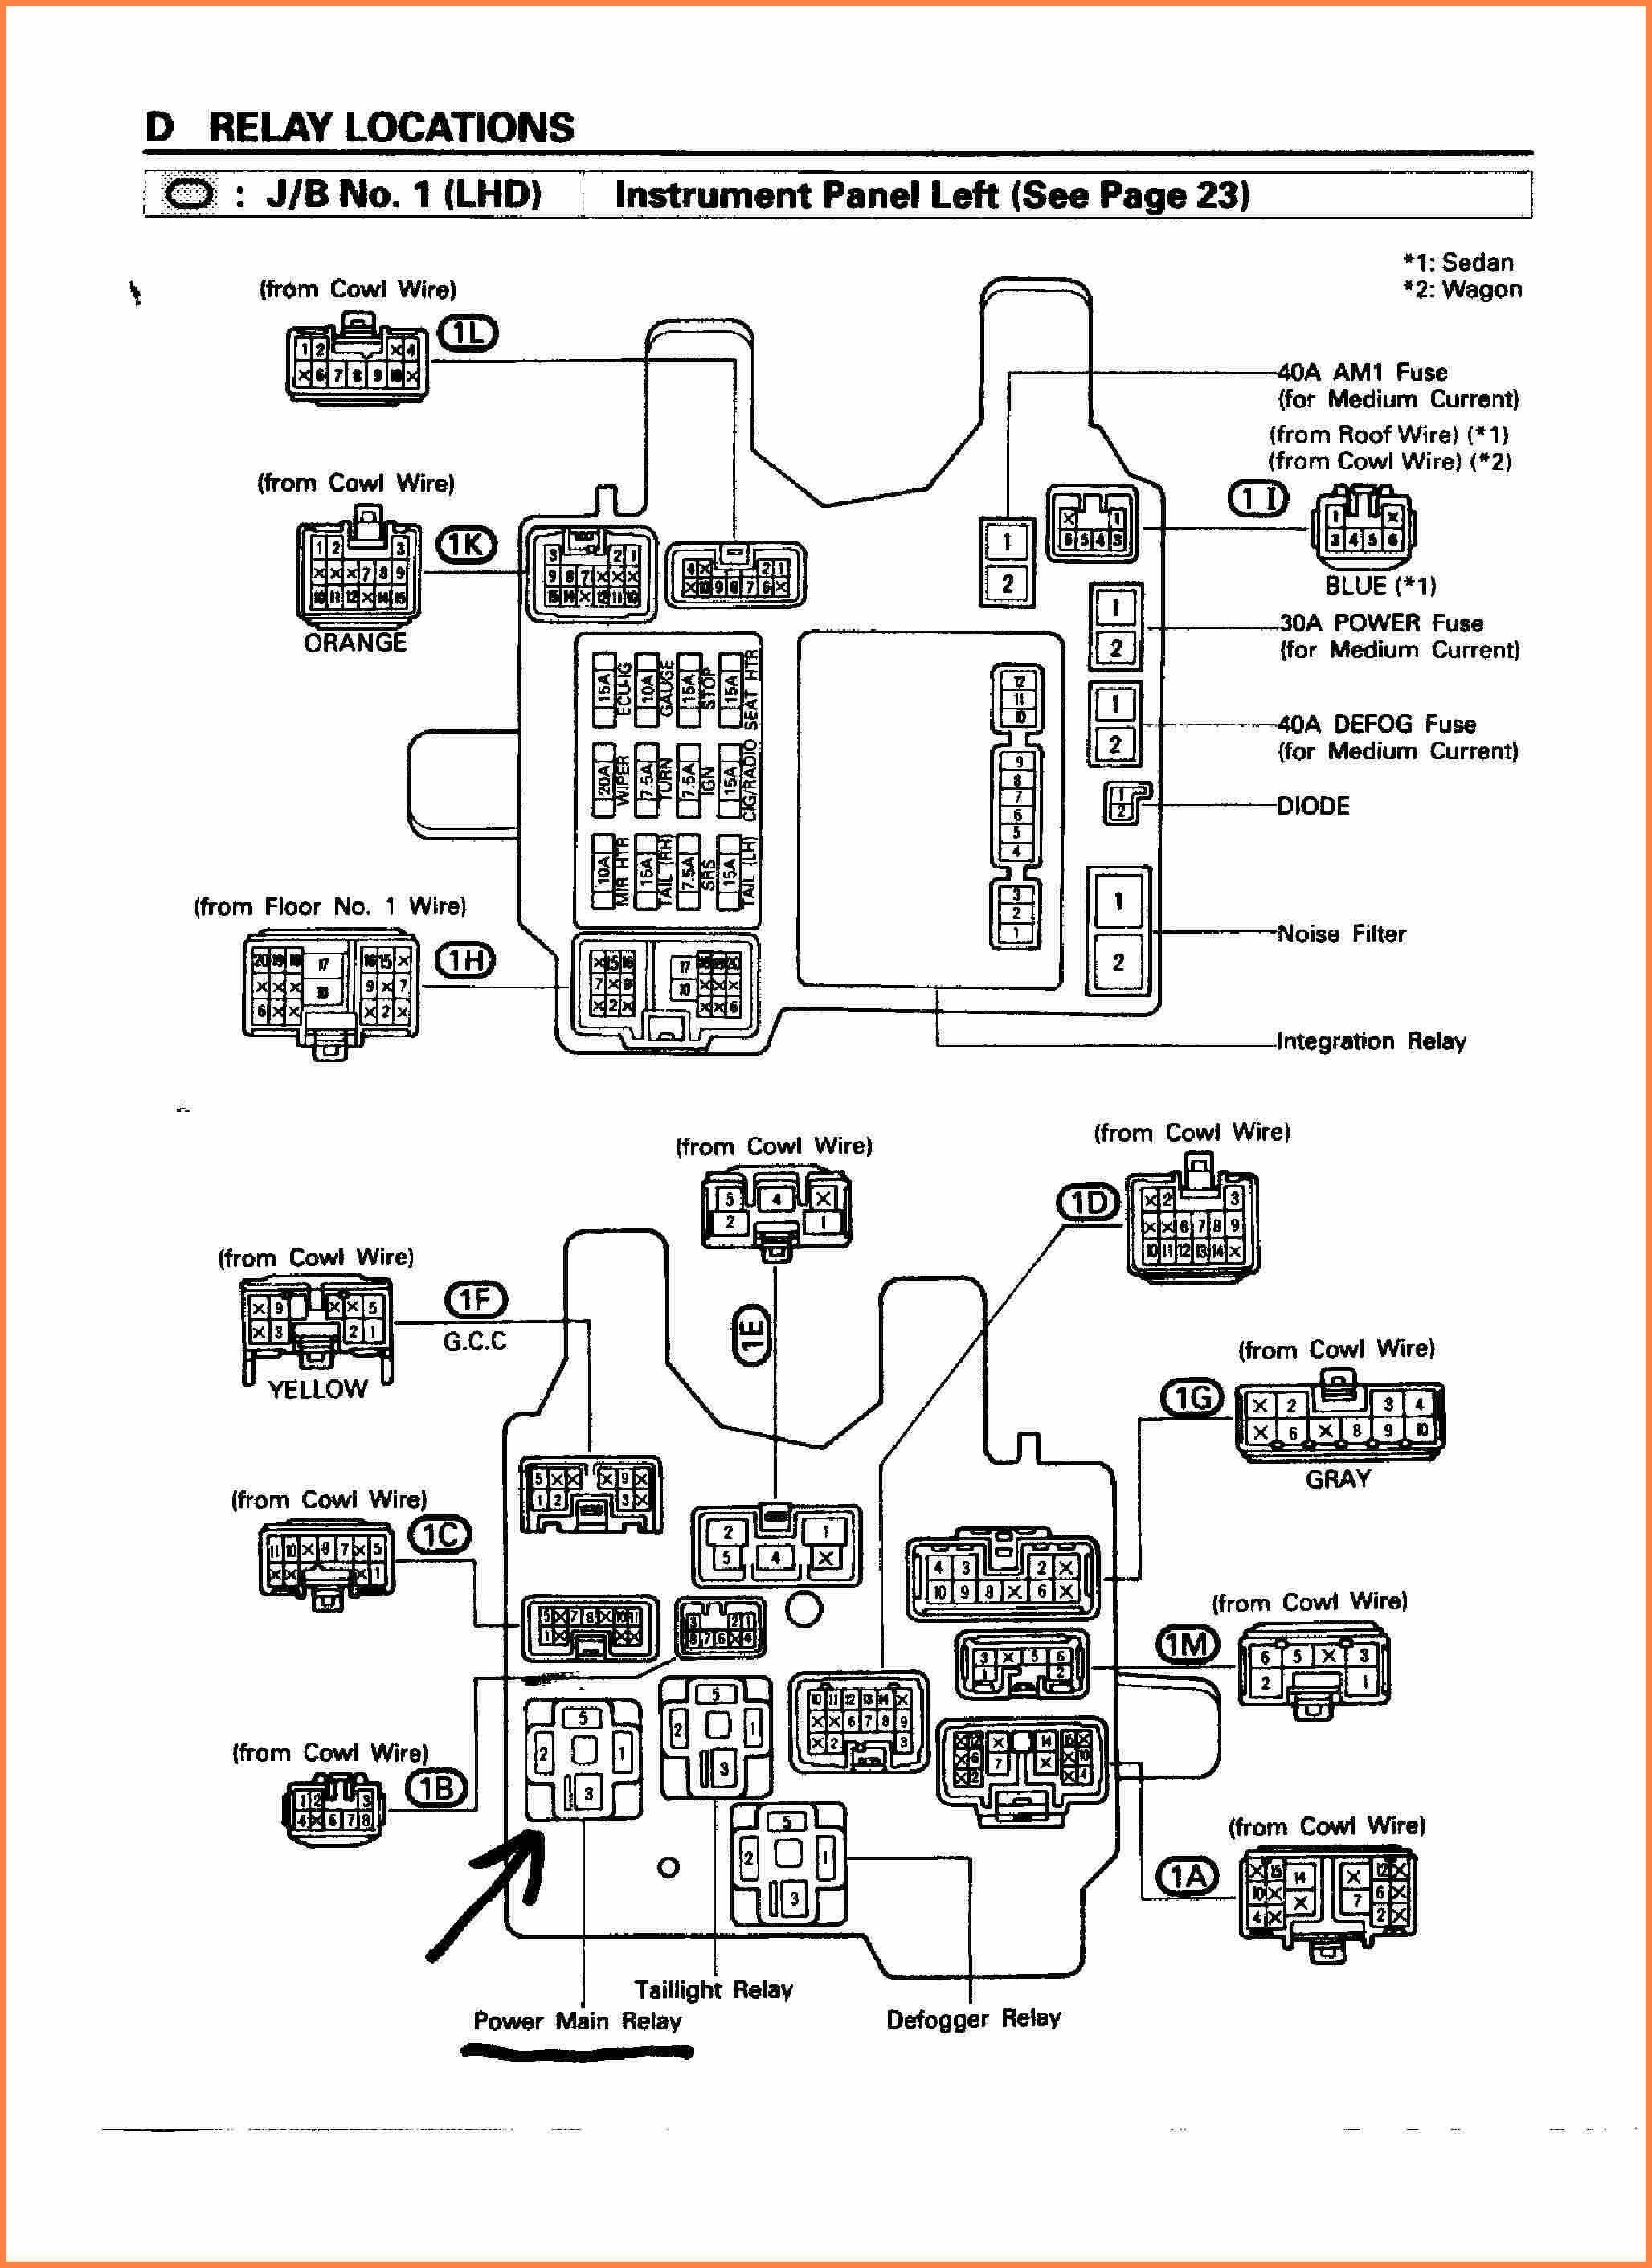 99 Camry Engine Diagram 1994 Camry Le Wiring Diagram Another Blog About Wiring Diagram • Of 99 Camry Engine Diagram How to Use toyota Camry Over Drive button Years 2002 to 2008